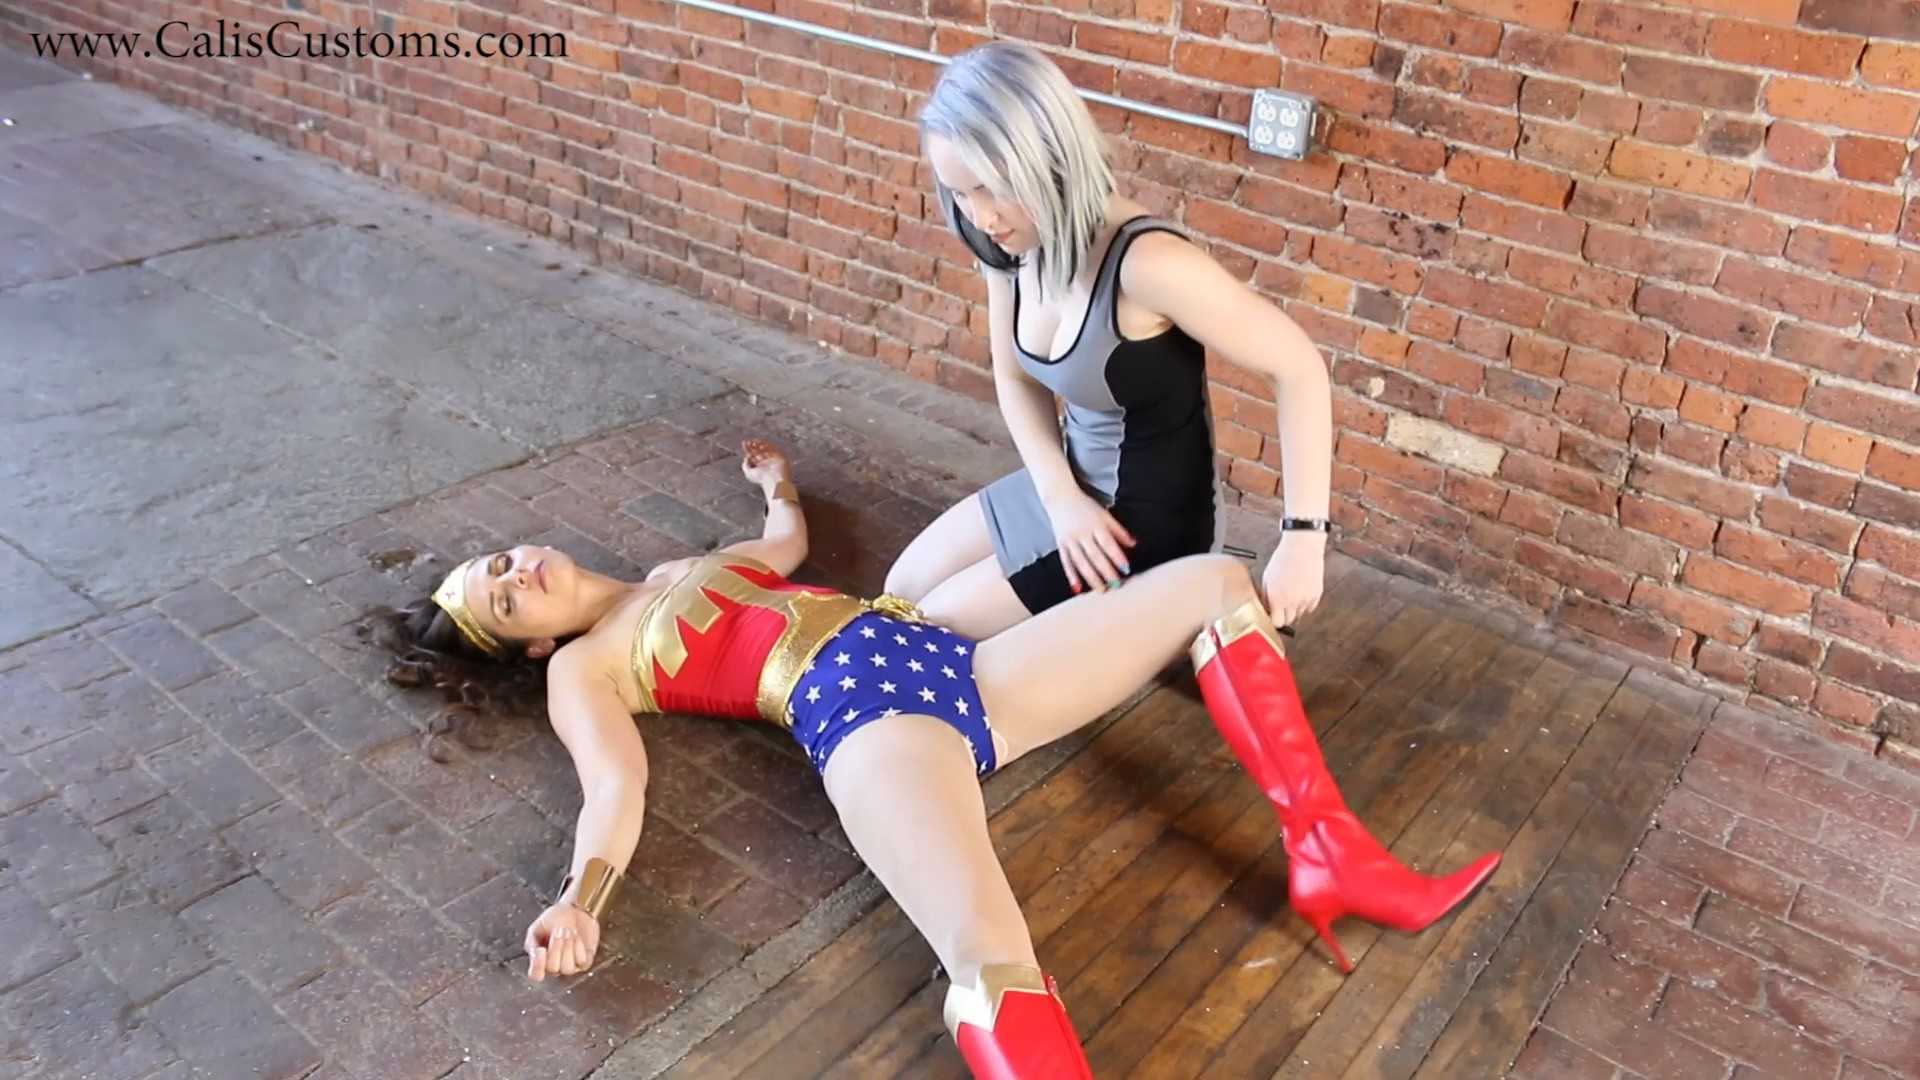 CALI The Wonder Woman KO Trap (32)